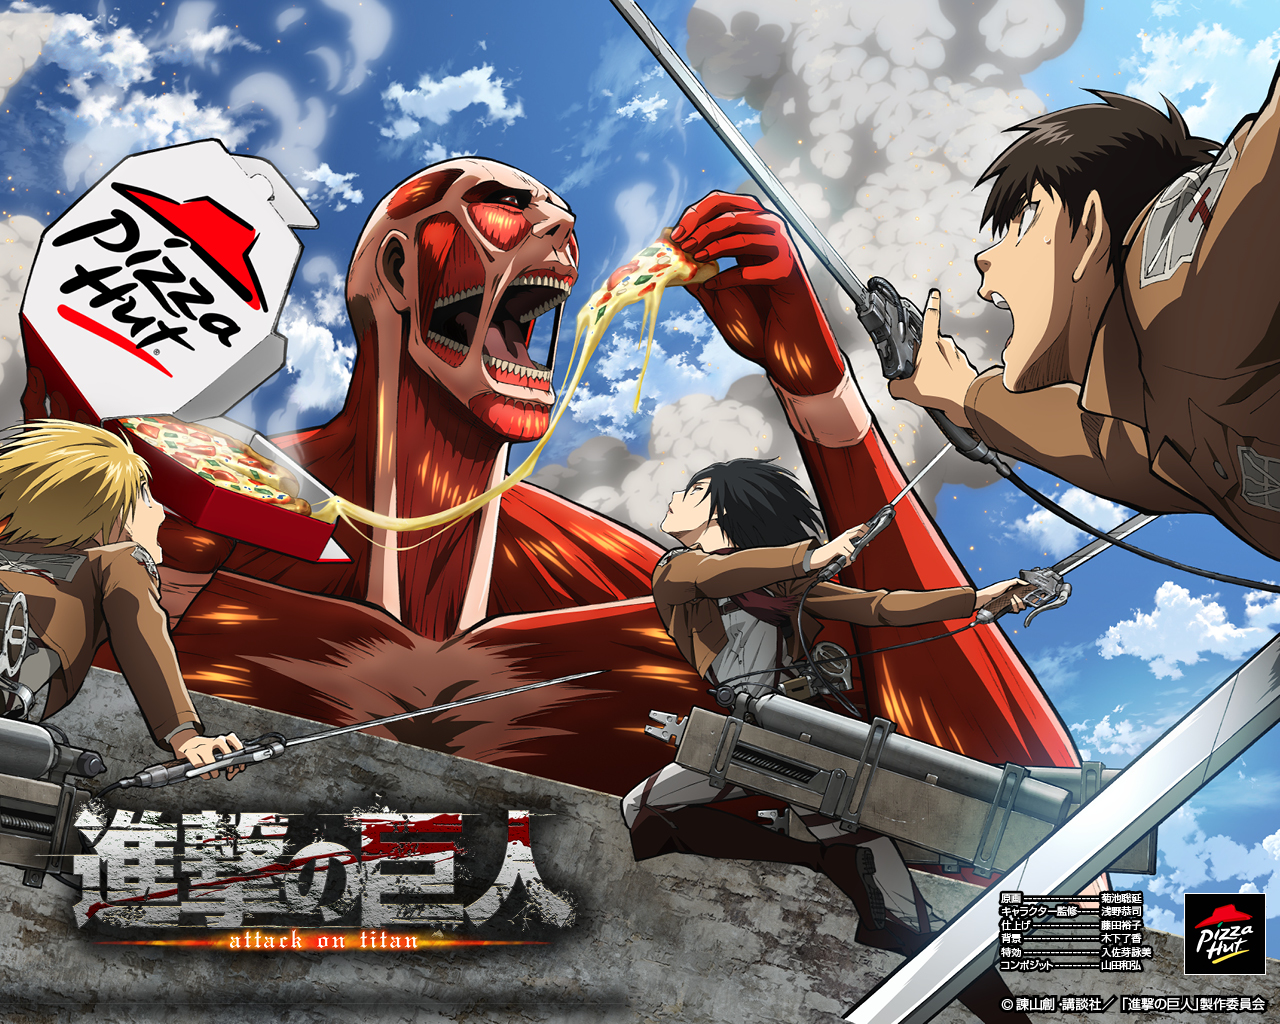 Attack On Titan Wallpaper Zerochan Anime Image Board